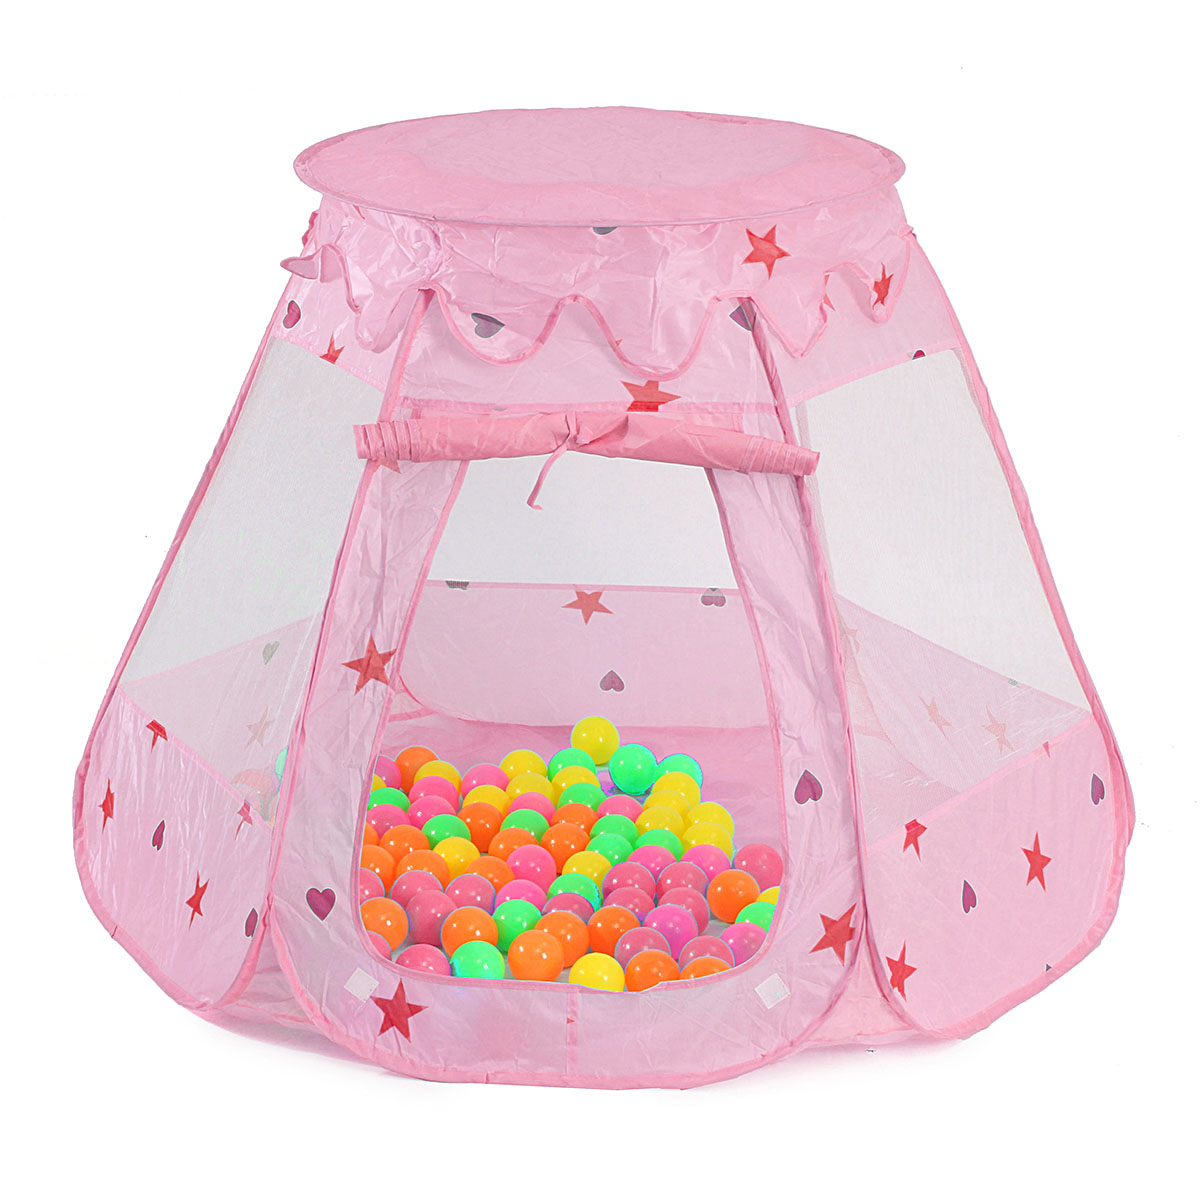 Folding Ball Pit Play Tents House Indoor and Outdoor Princess Large Space PlayHouse Castle Tent Toys as a Best Gift for 1 to 8 Years Old Kids Boy Girls Baby Infant